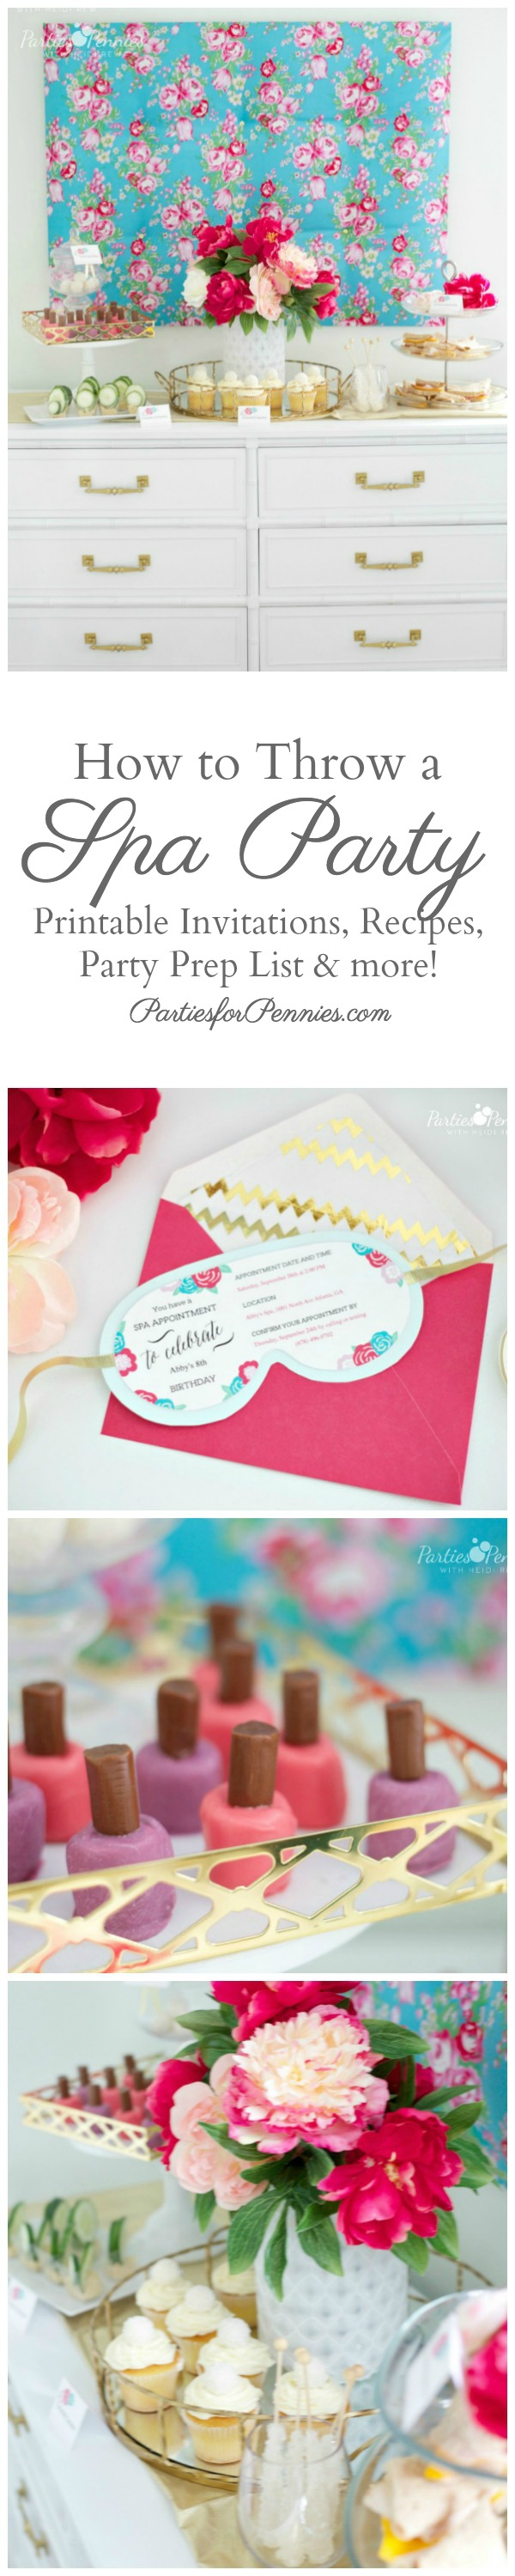 image about Spa Party Printable identified as Spa Get together with Printables! - Events for Pennies